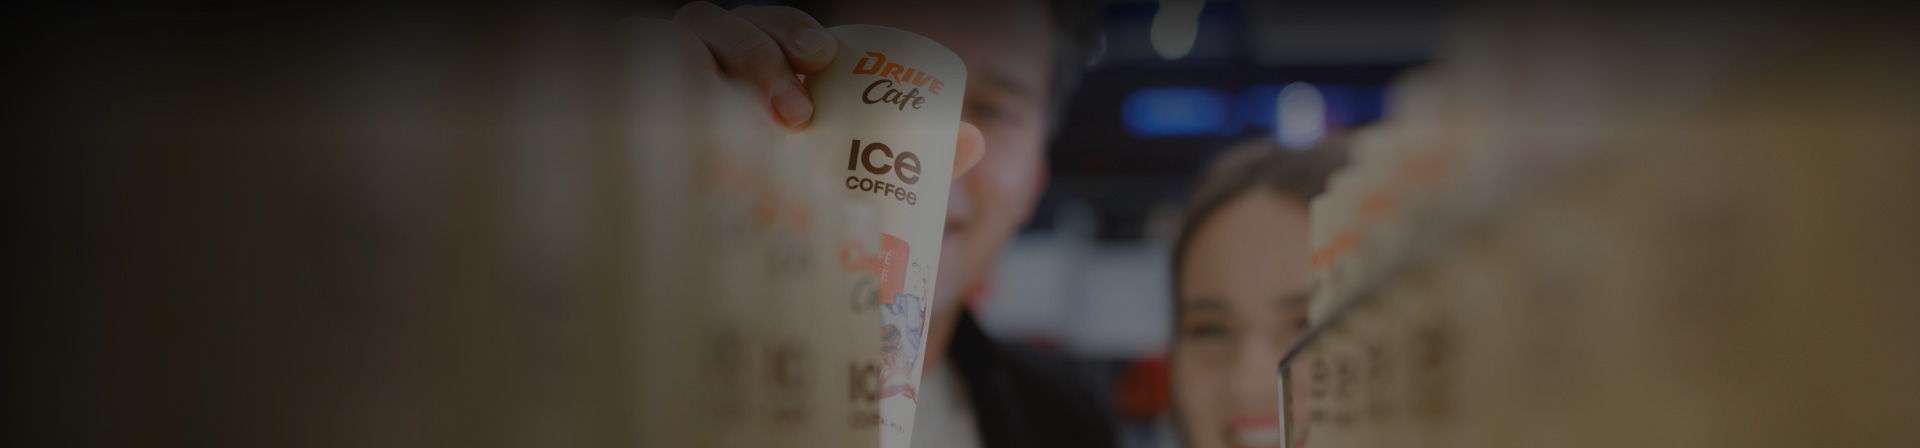 drive cafe ice coffee cans